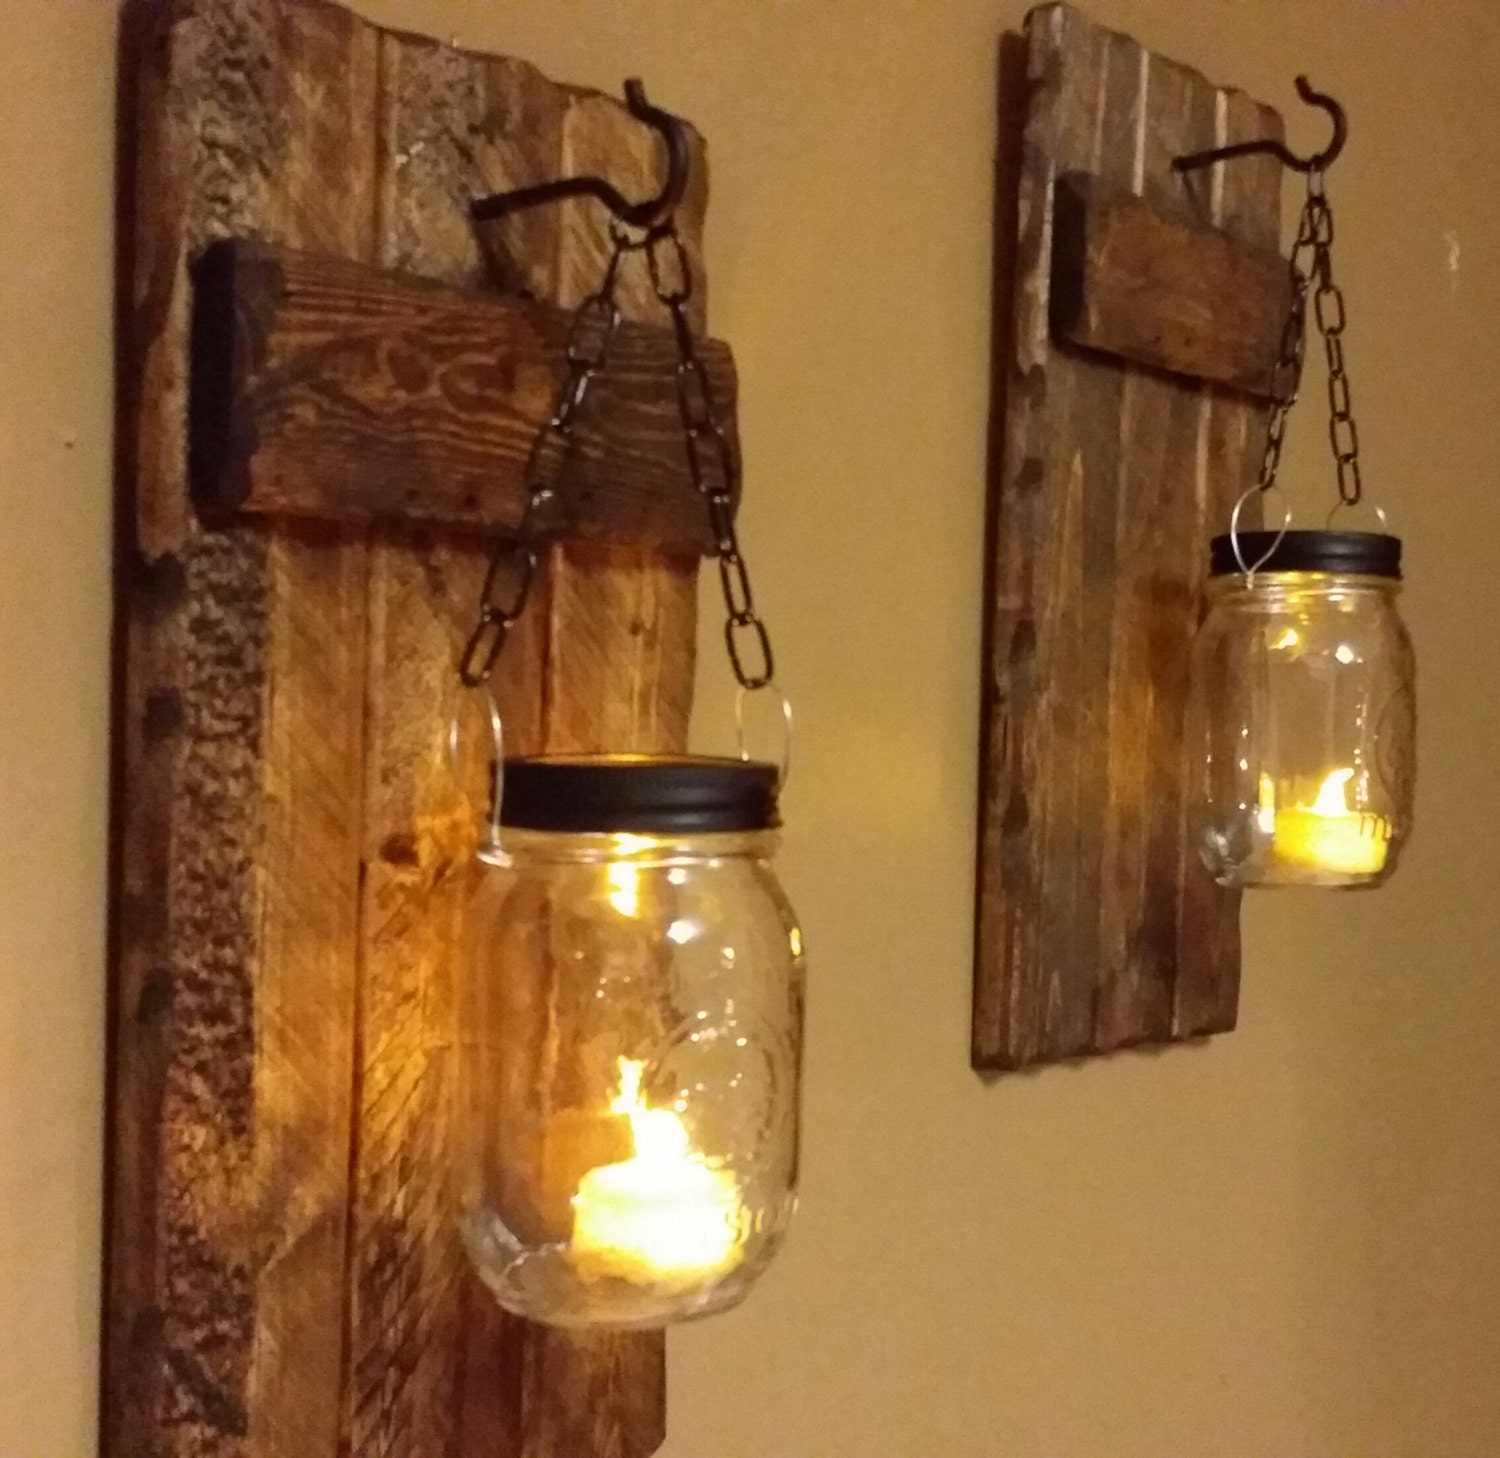 Wood sconces rustic home decor rustic candle holder - Candle home decor photos ...